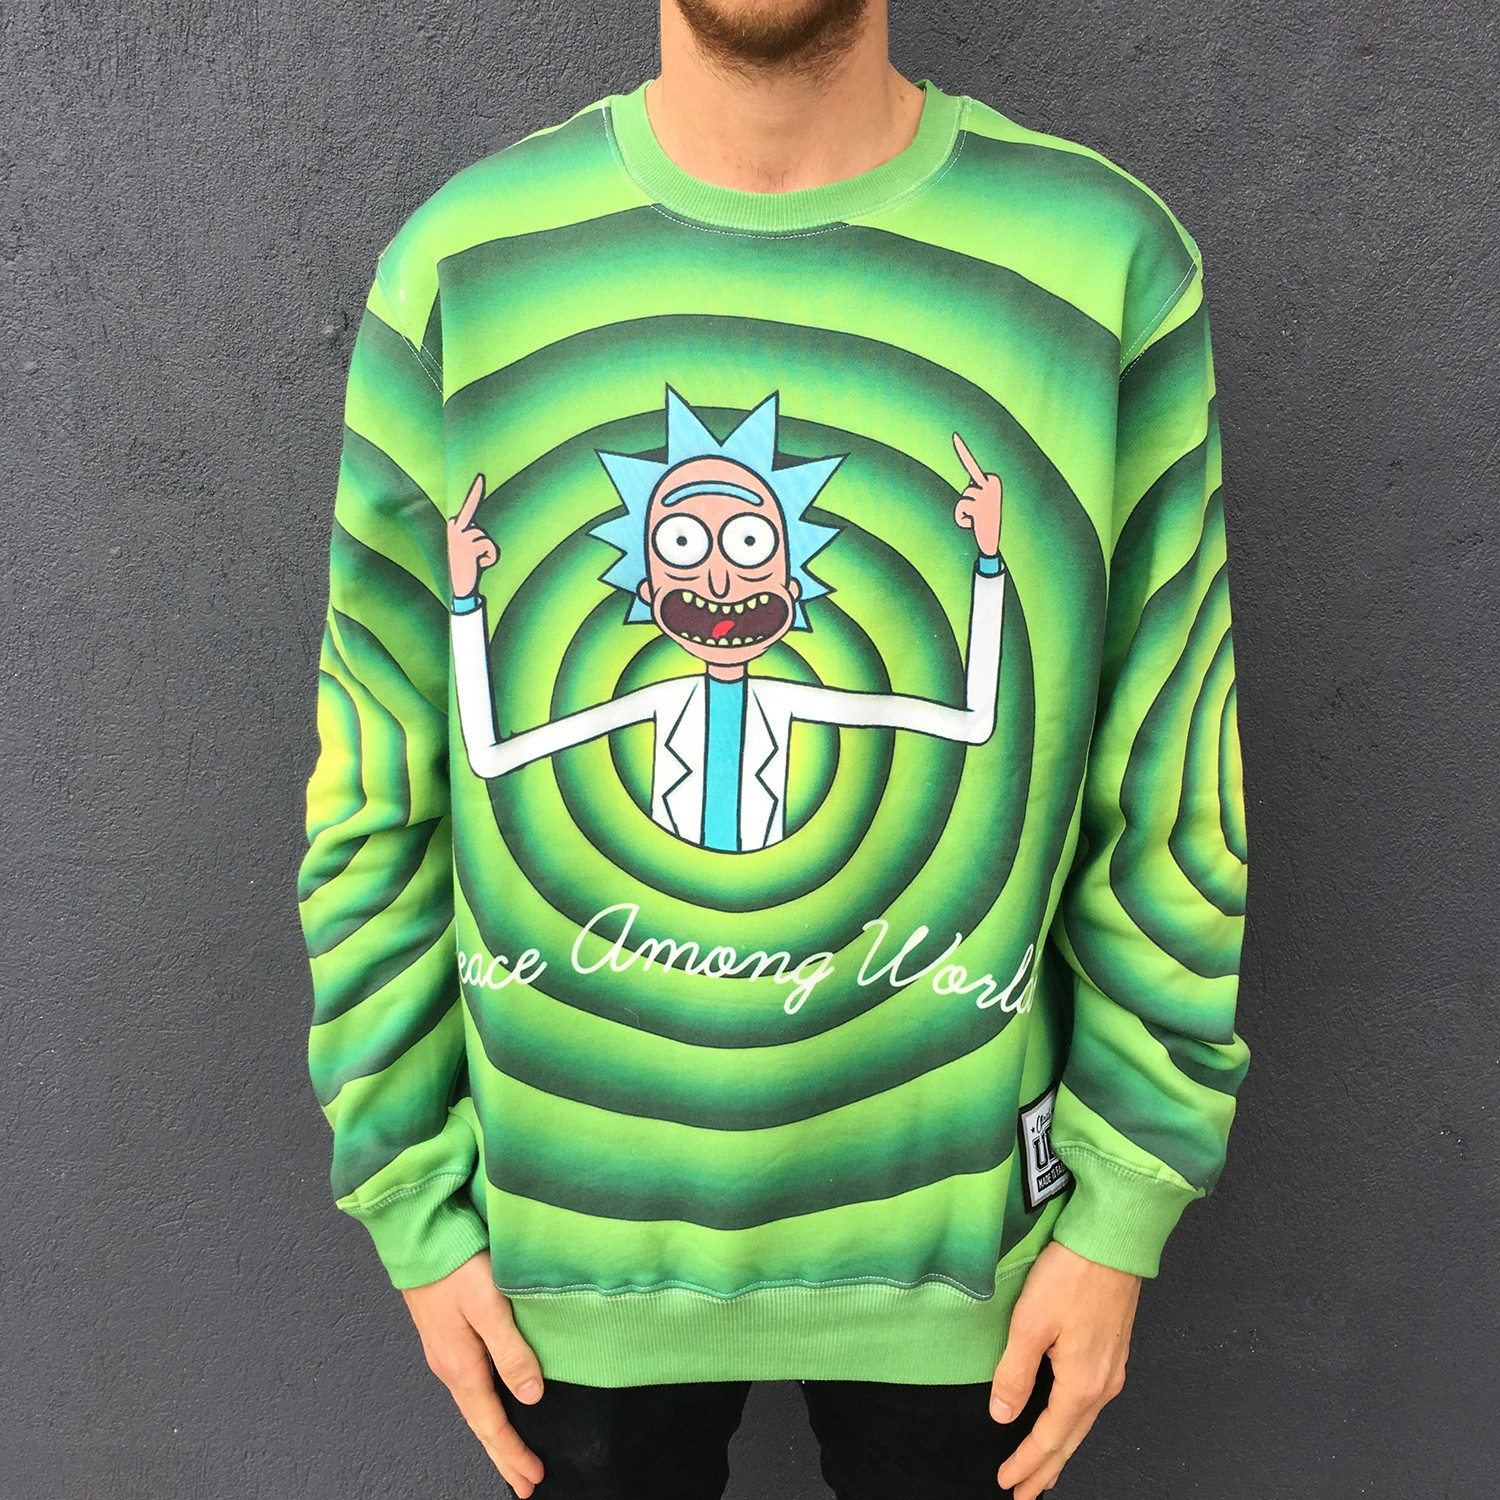 FULL PRINT PEACE AMONG WORLDS CREW